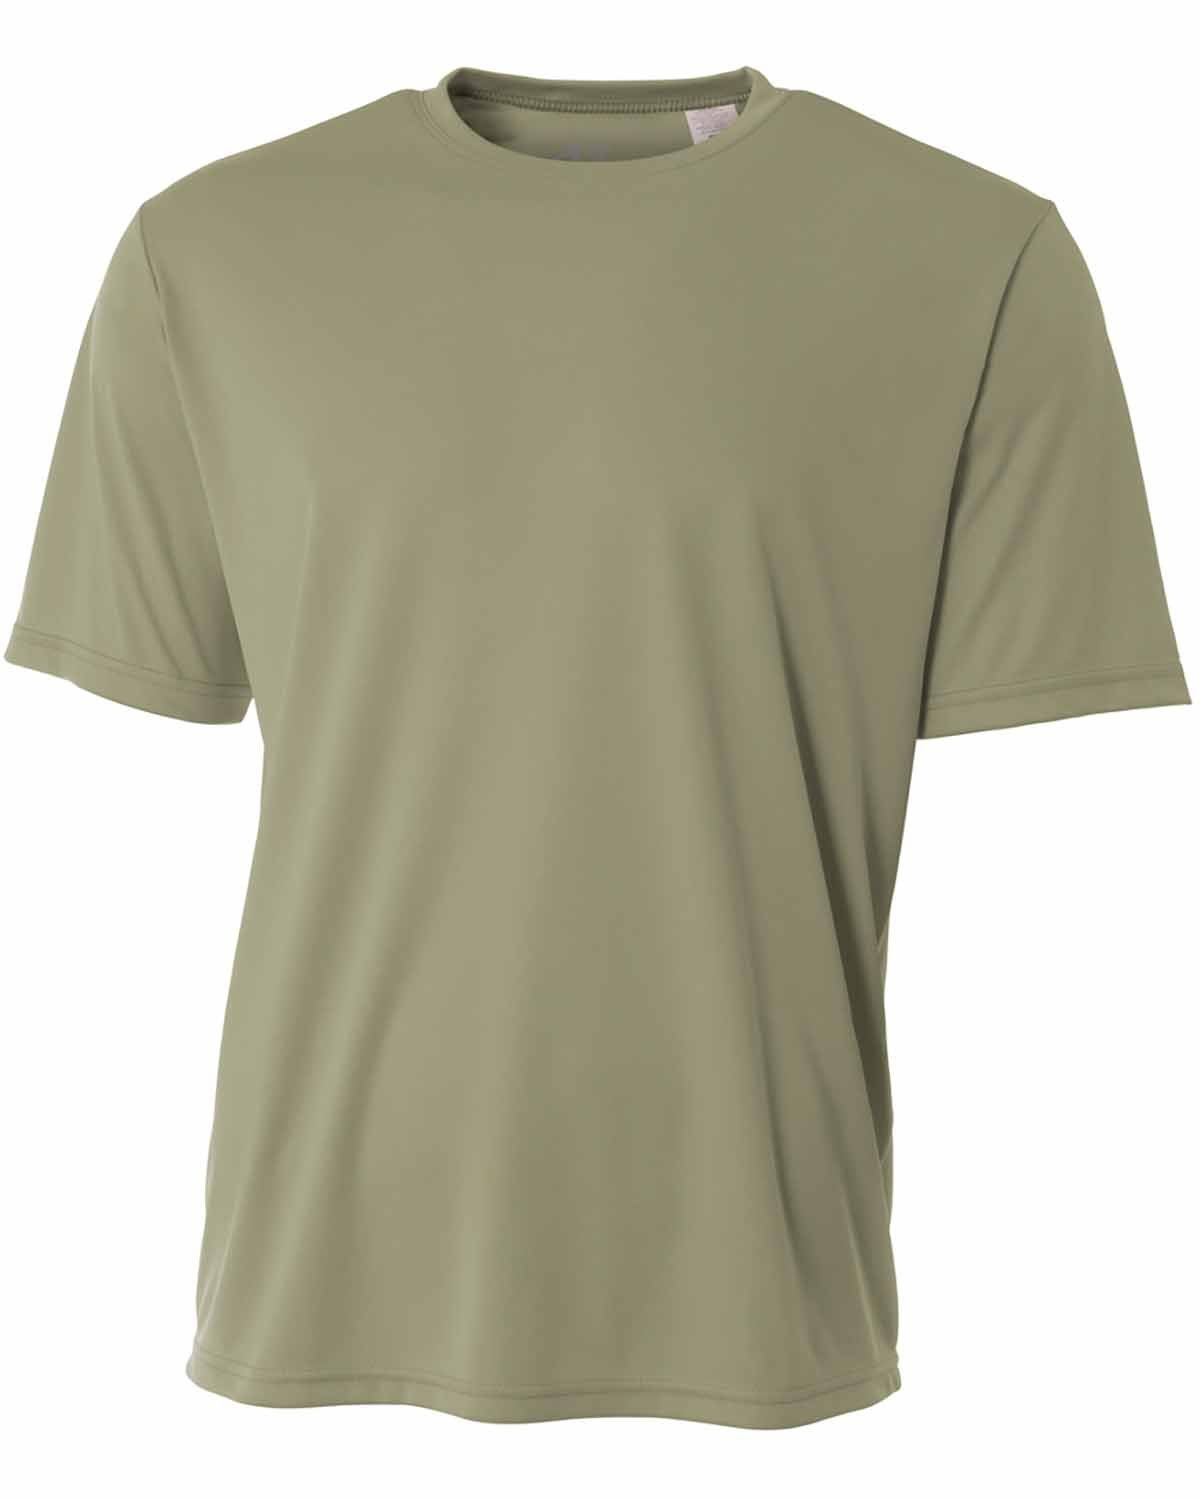 A4 Youth Cooling Performance T-Shirt OLIVE